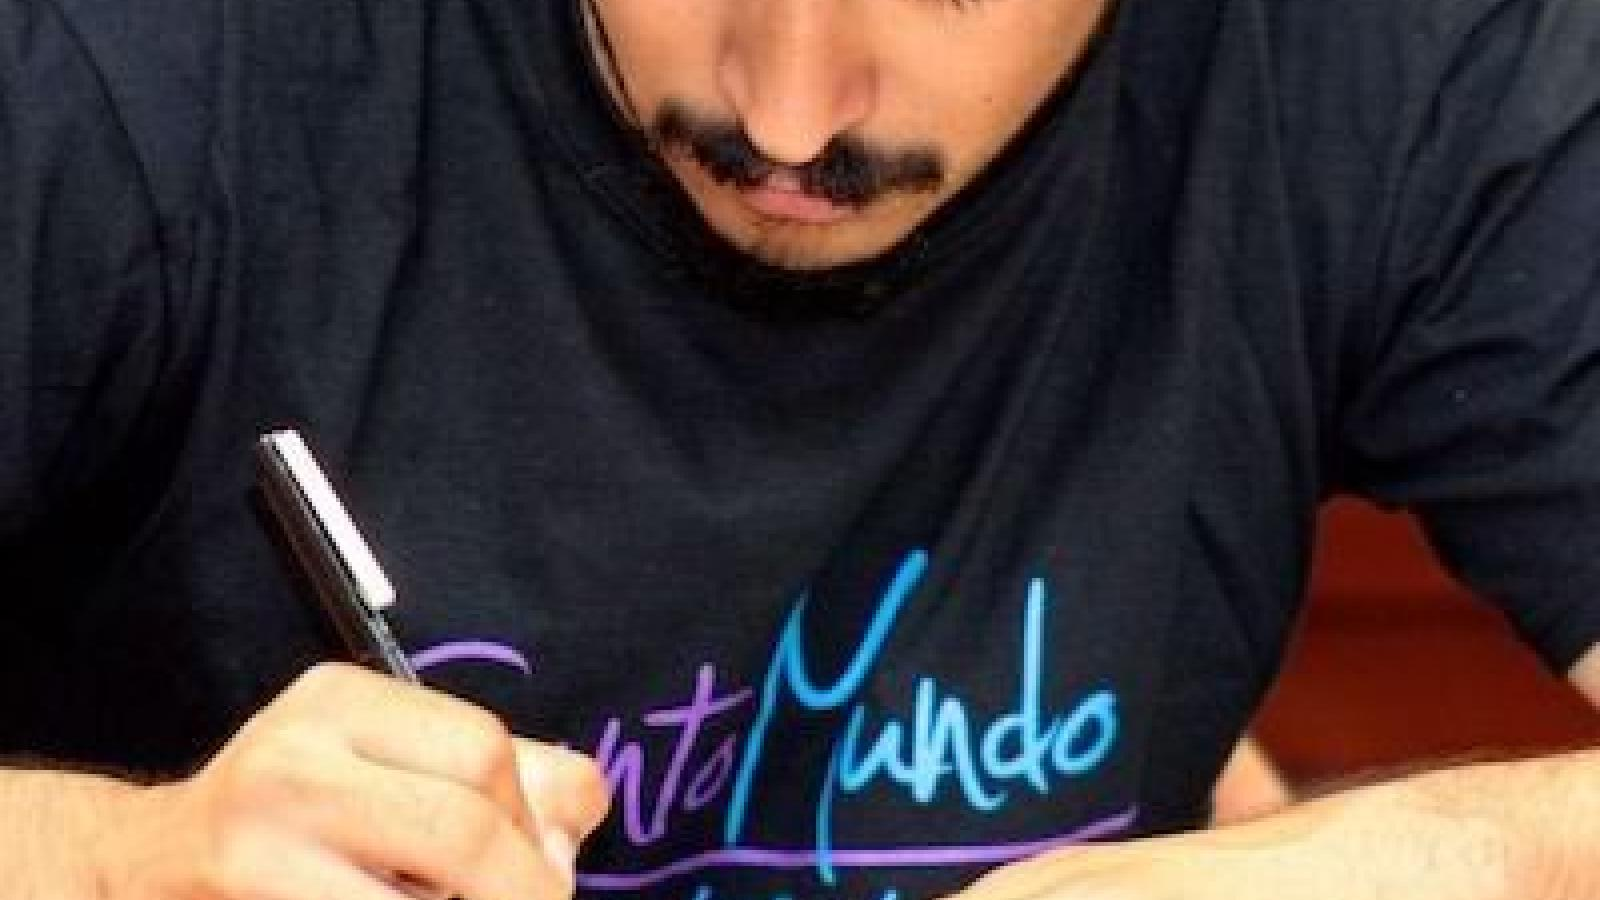 Headshot of a young Latino man wearing a hat and a Canto Mundo t-shirt bent over and writing on a page